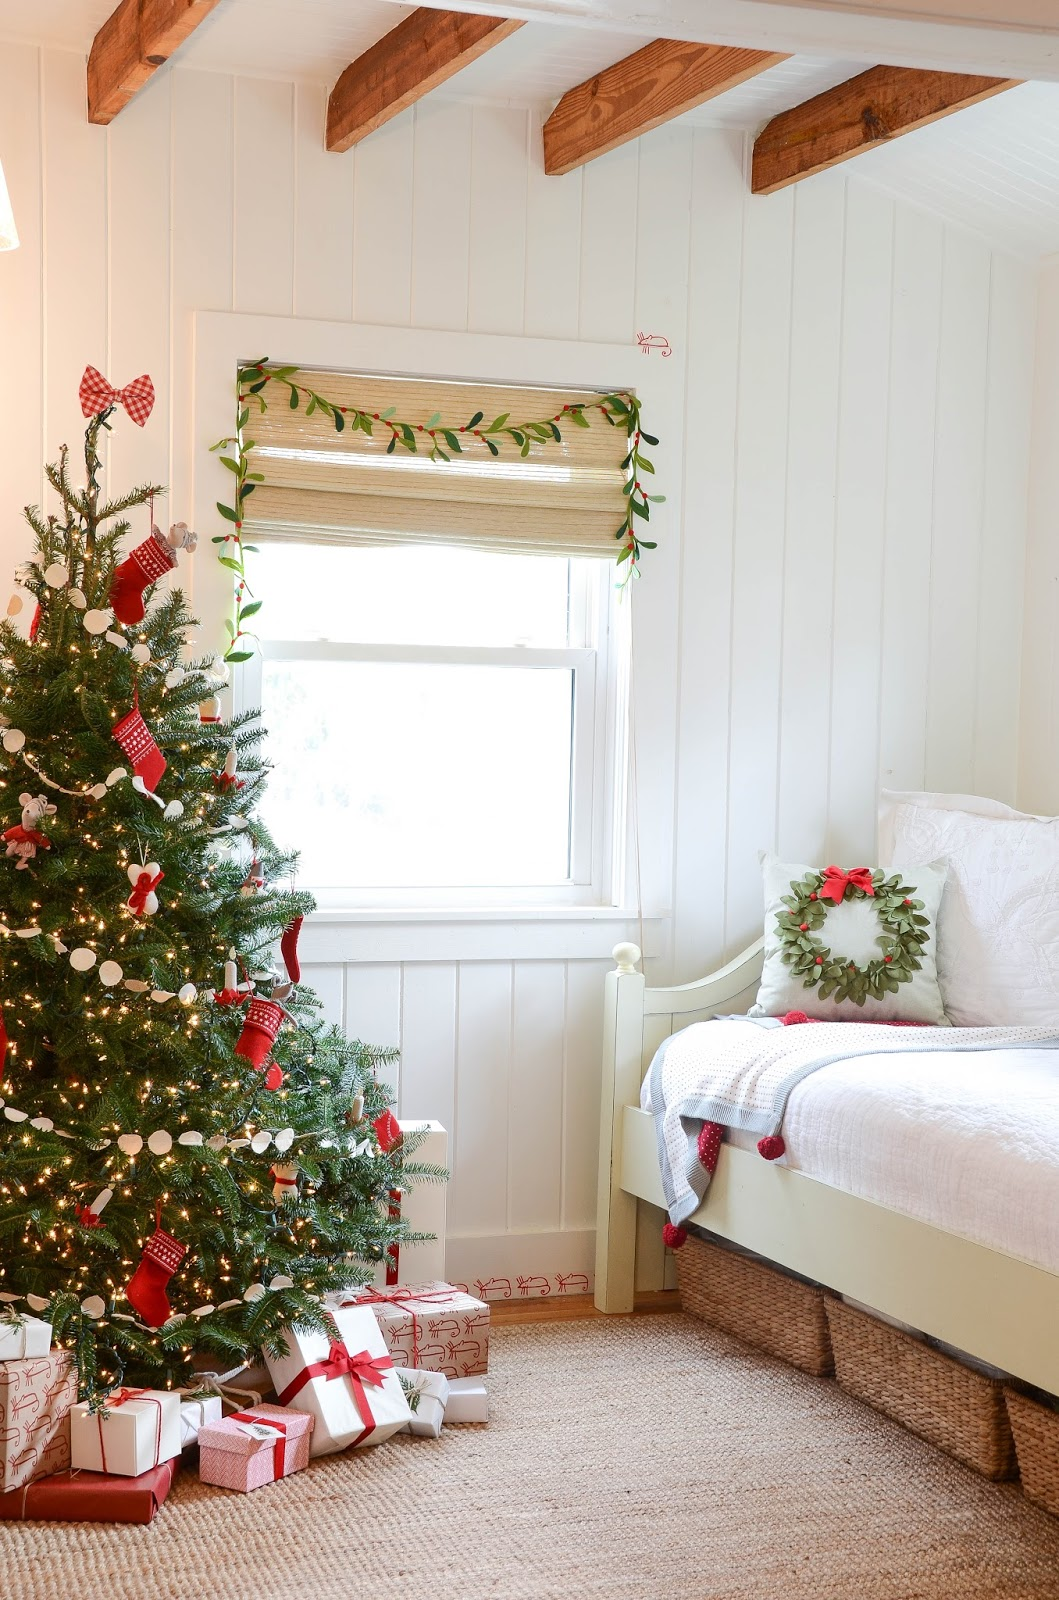 Night%2BBefore%2BChristmas%2C%2BNot%2Ba%2Bcreature%2Bwas%2Bstirring%2C%2BChristmas%2BDecor%2B(2).jpg